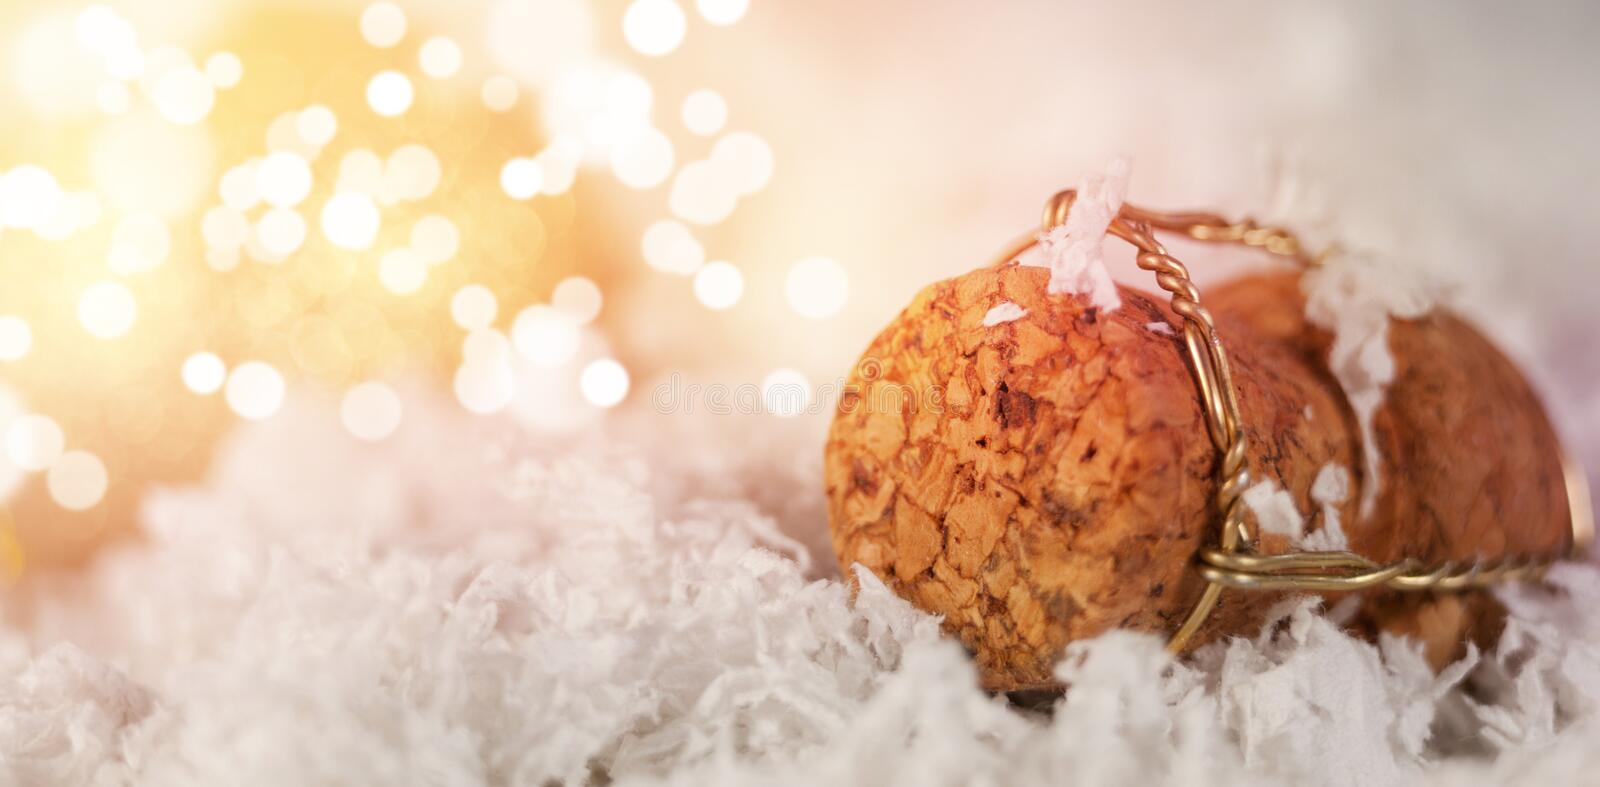 Close-up of champagne cork royalty free stock images